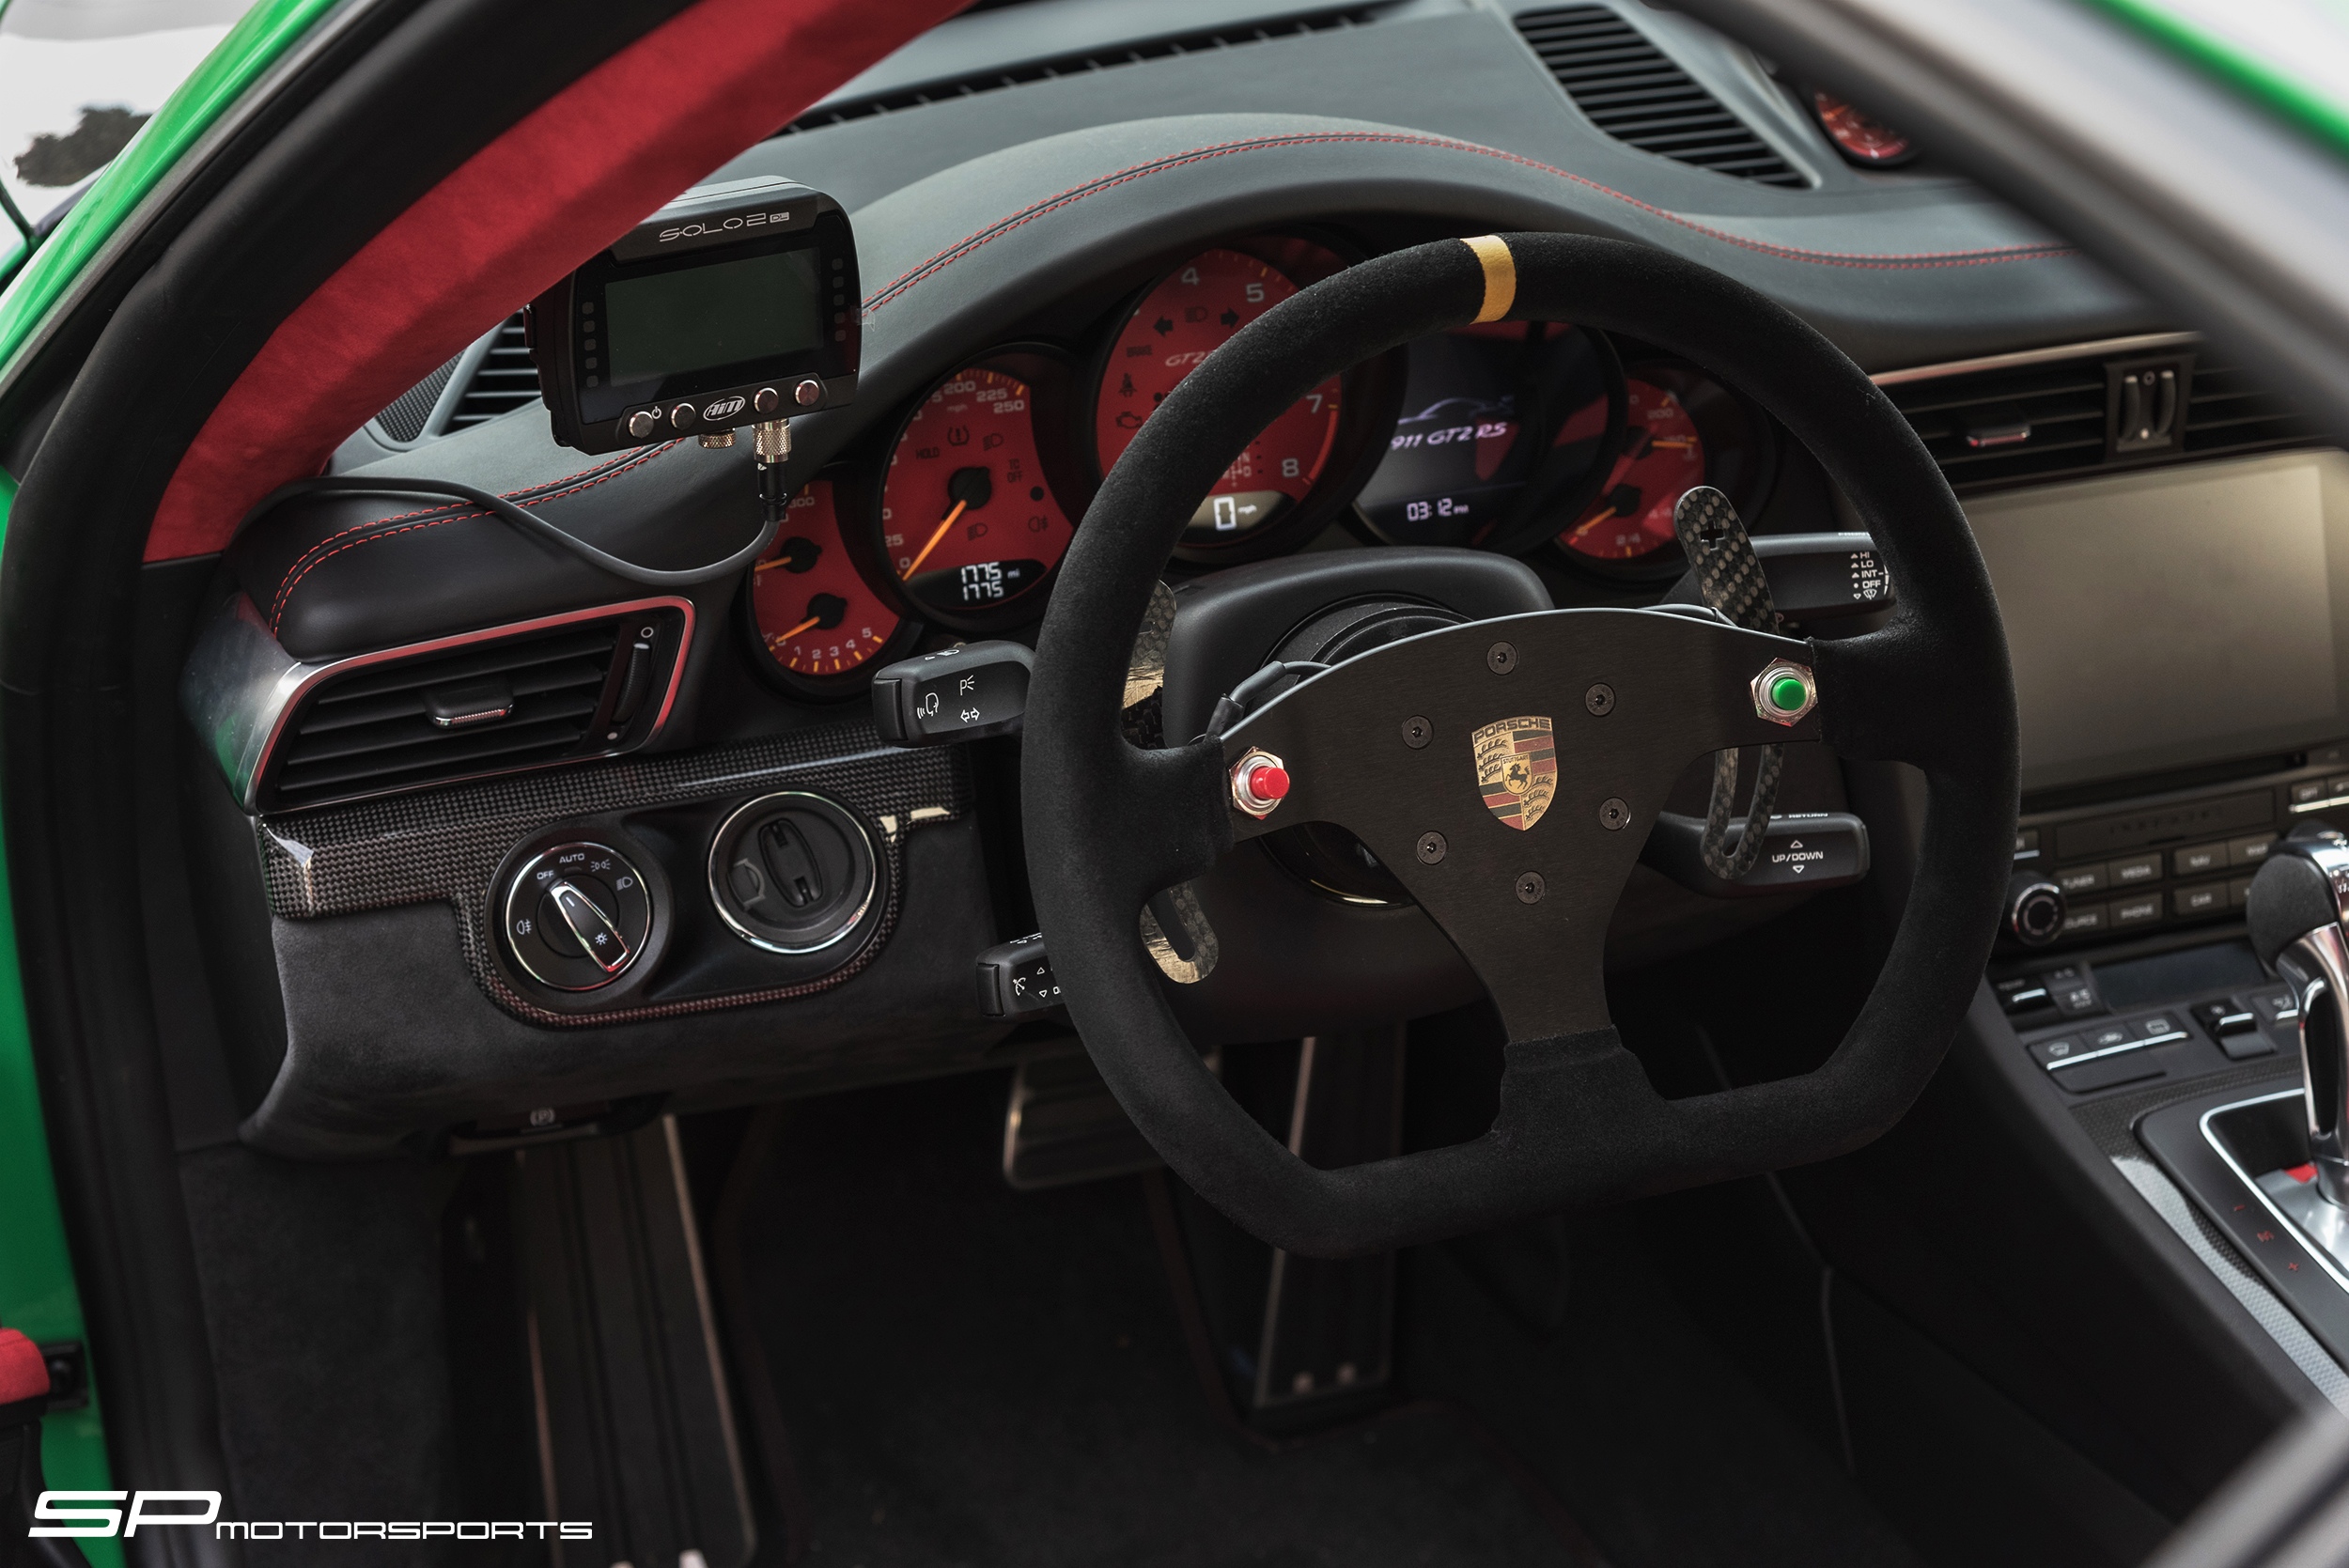 Race car development - Whether it's a Boxster Spec Racer or an utterly wild 991 GT3 with twin turbos, we work with you on building exactly what you want and how you want it. We make sure the car is safe and legal for your race class. If you want to throw the rules right out the window then, we can tailor something that fits your needs, within your budget.